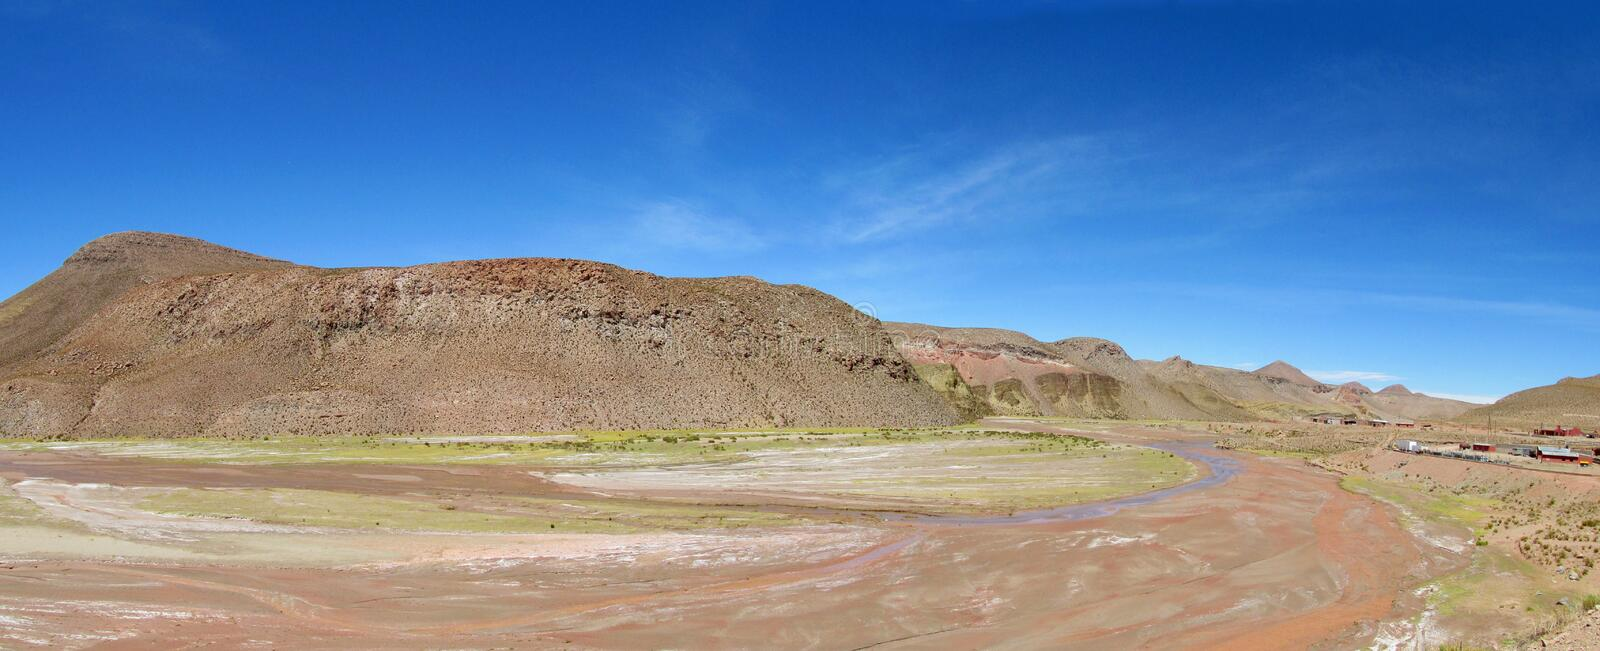 Dry river valley in desert. Altiplano desert valley. Panoramic view of empty dry solty desert soil in dry river canyon. Red rocks stock photo